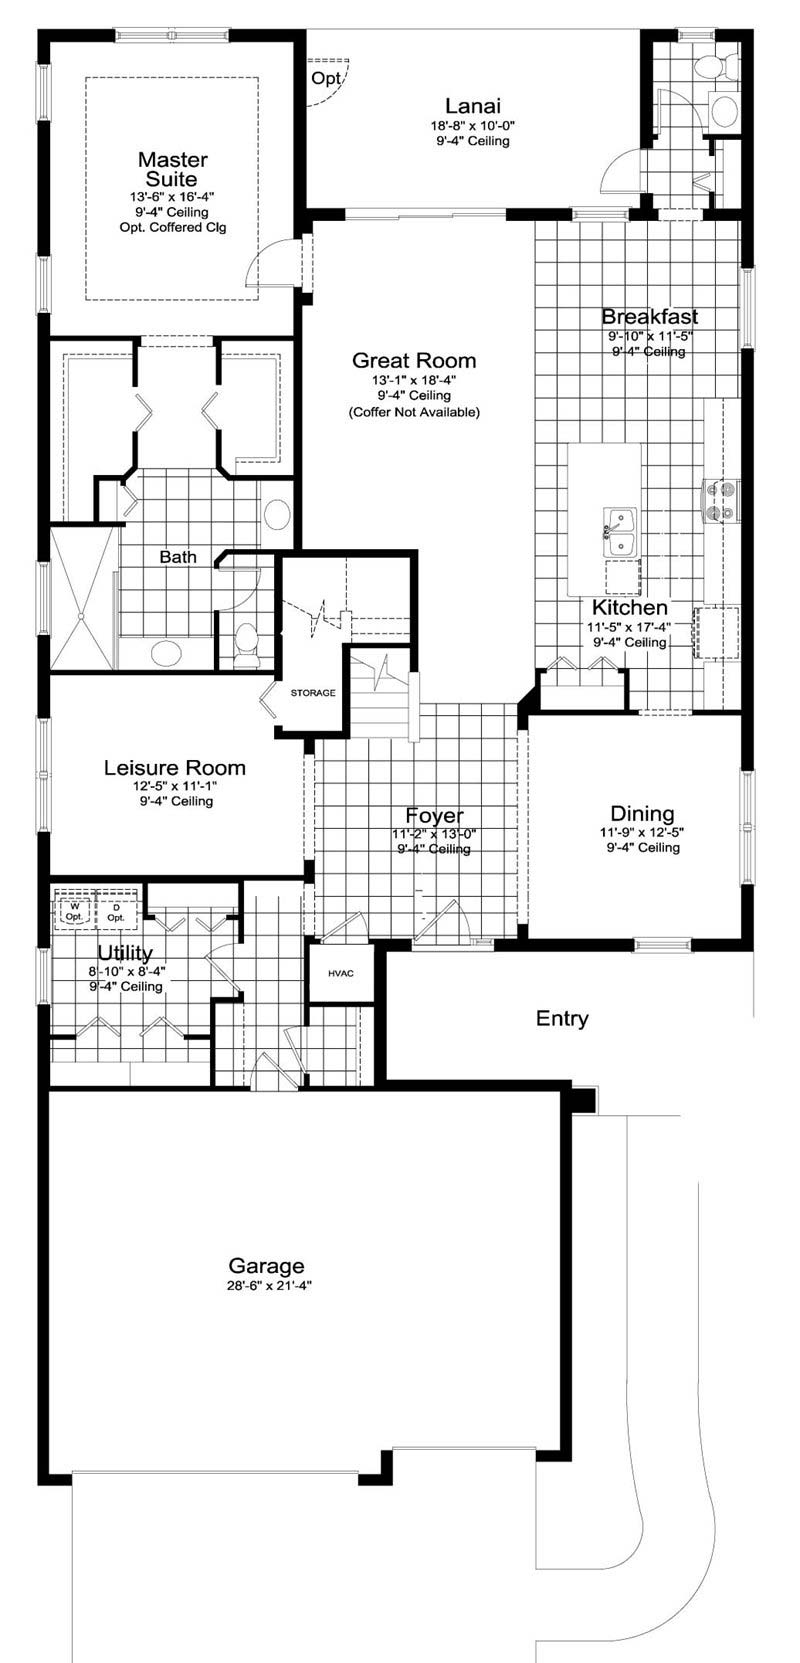 Silver Mist 3 Floor Plan in Coastal Key, Fort Myers by Neal Communities, 4 Bedrooms, 3.5 Bathrooms, 3 Car garage, 2,913 Square feet, 2 Story home